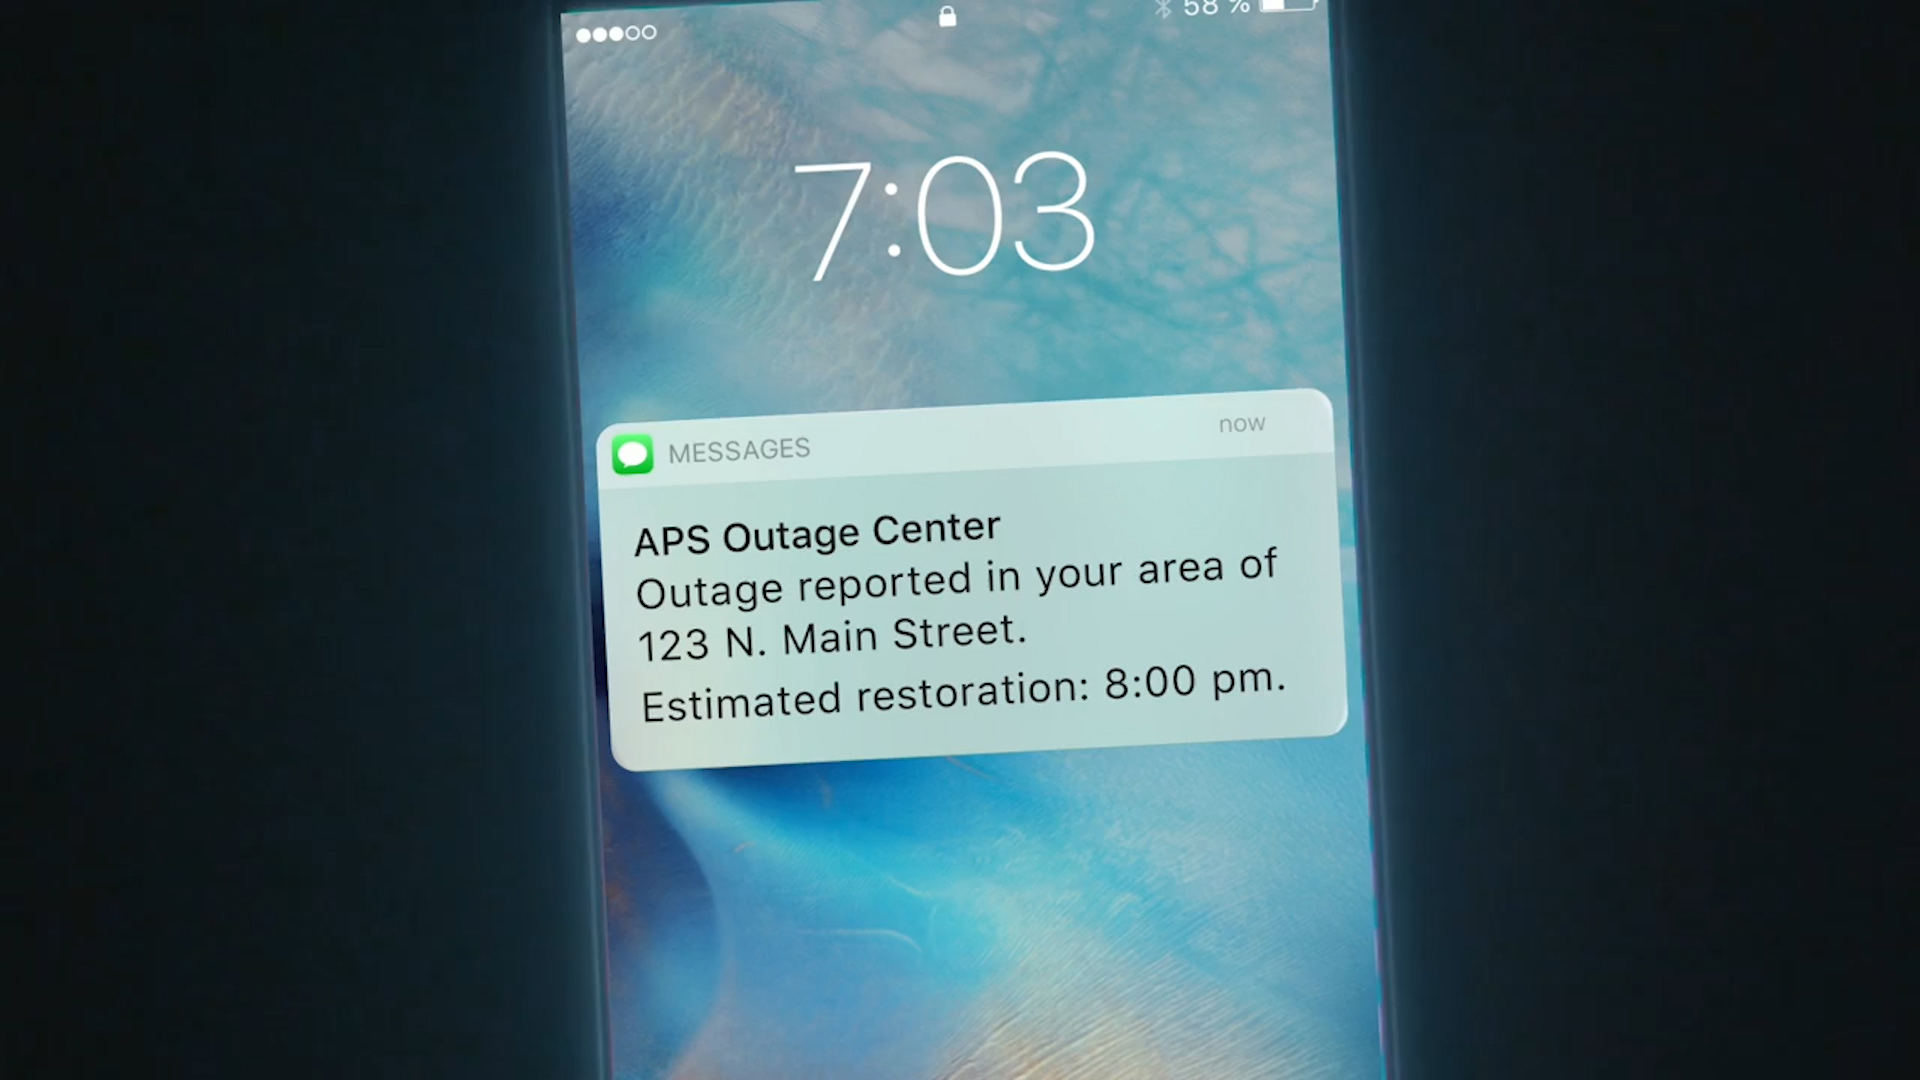 Close up view of an APS Outage Center notification on a phone.